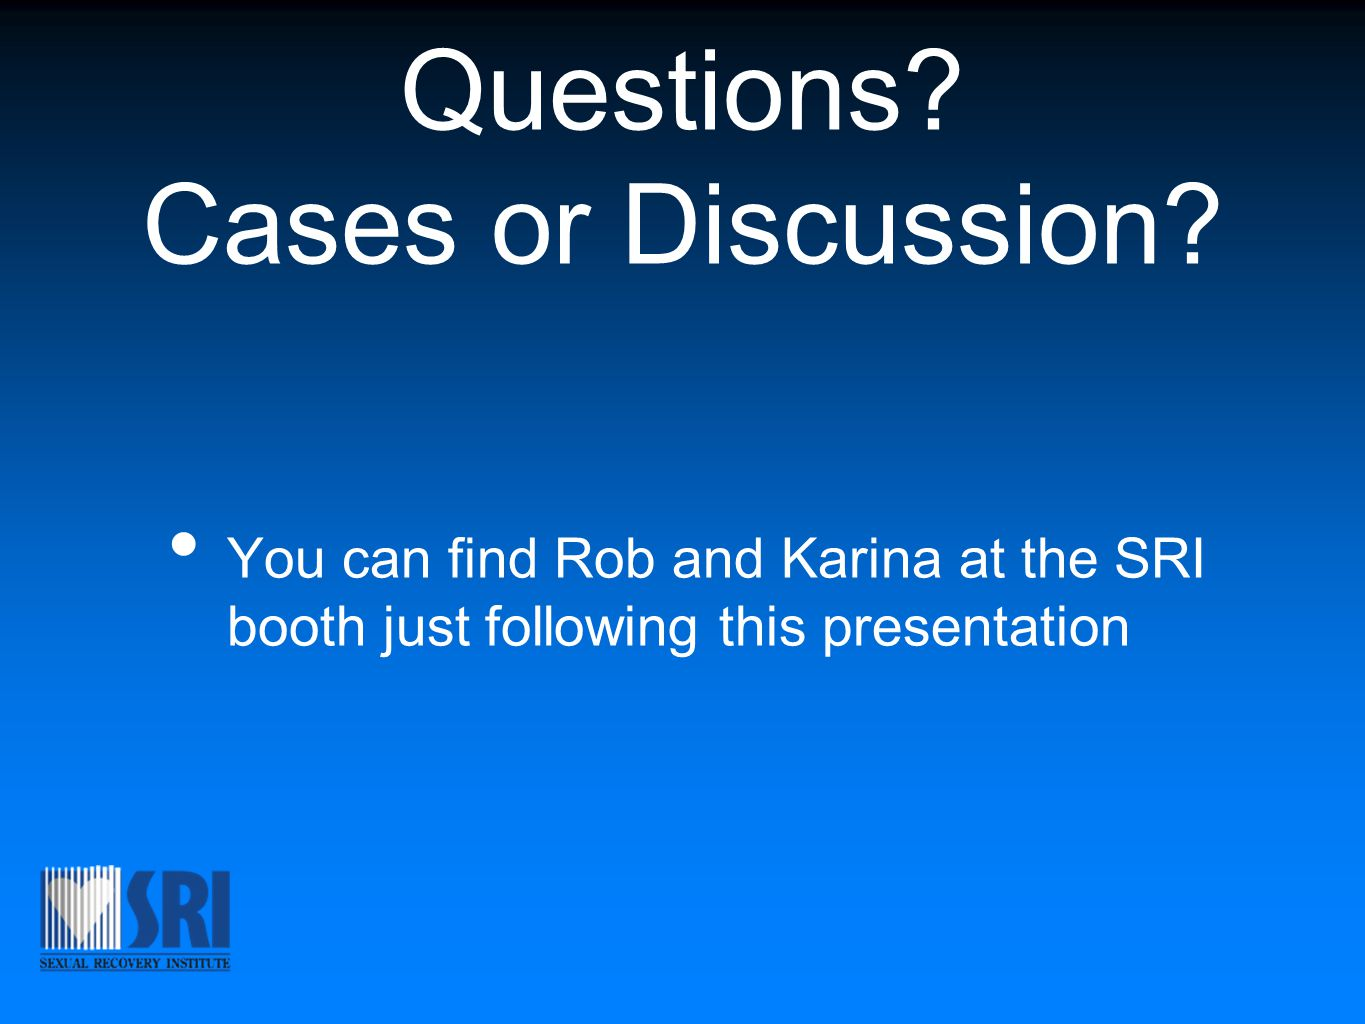 Questions? Cases or Discussion? You can find Rob and Karina at the SRI booth just following this presentation